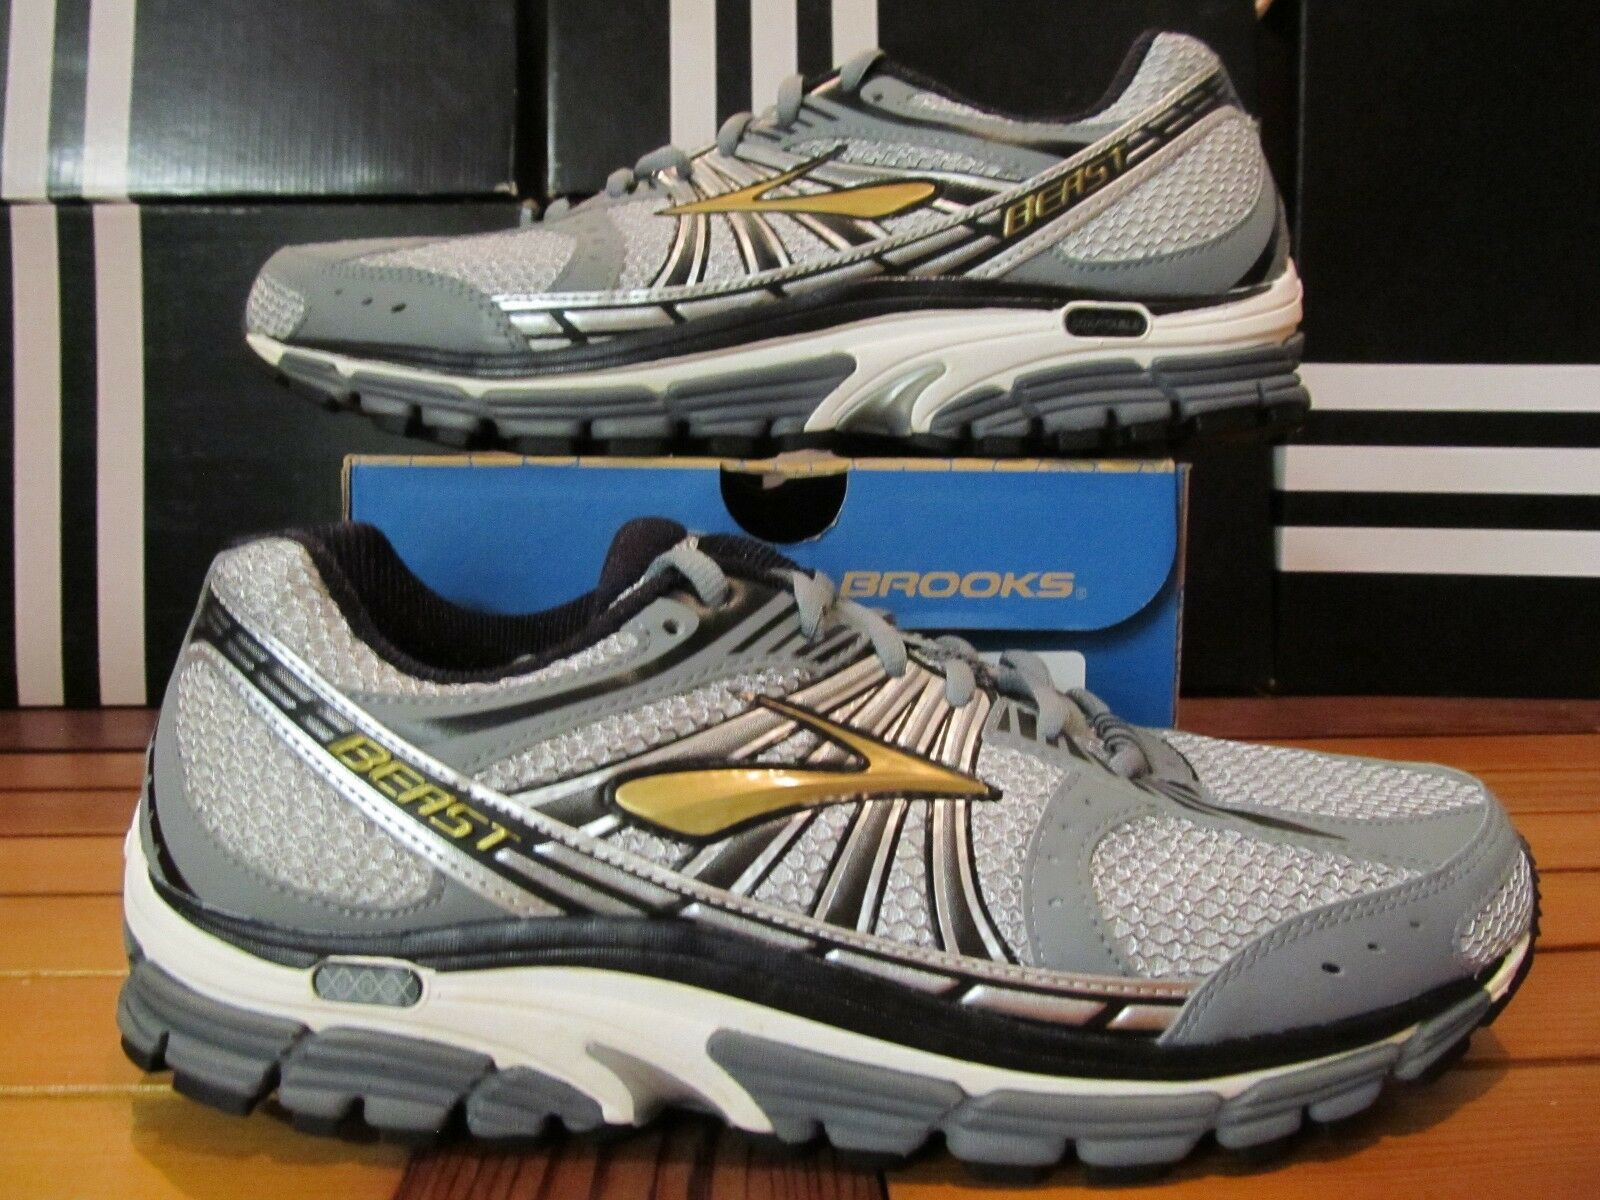 NEW Brooks Beast 12 Gold Silver Grey Blk 110122 1D 841 Running Shoes 15 16 17 18